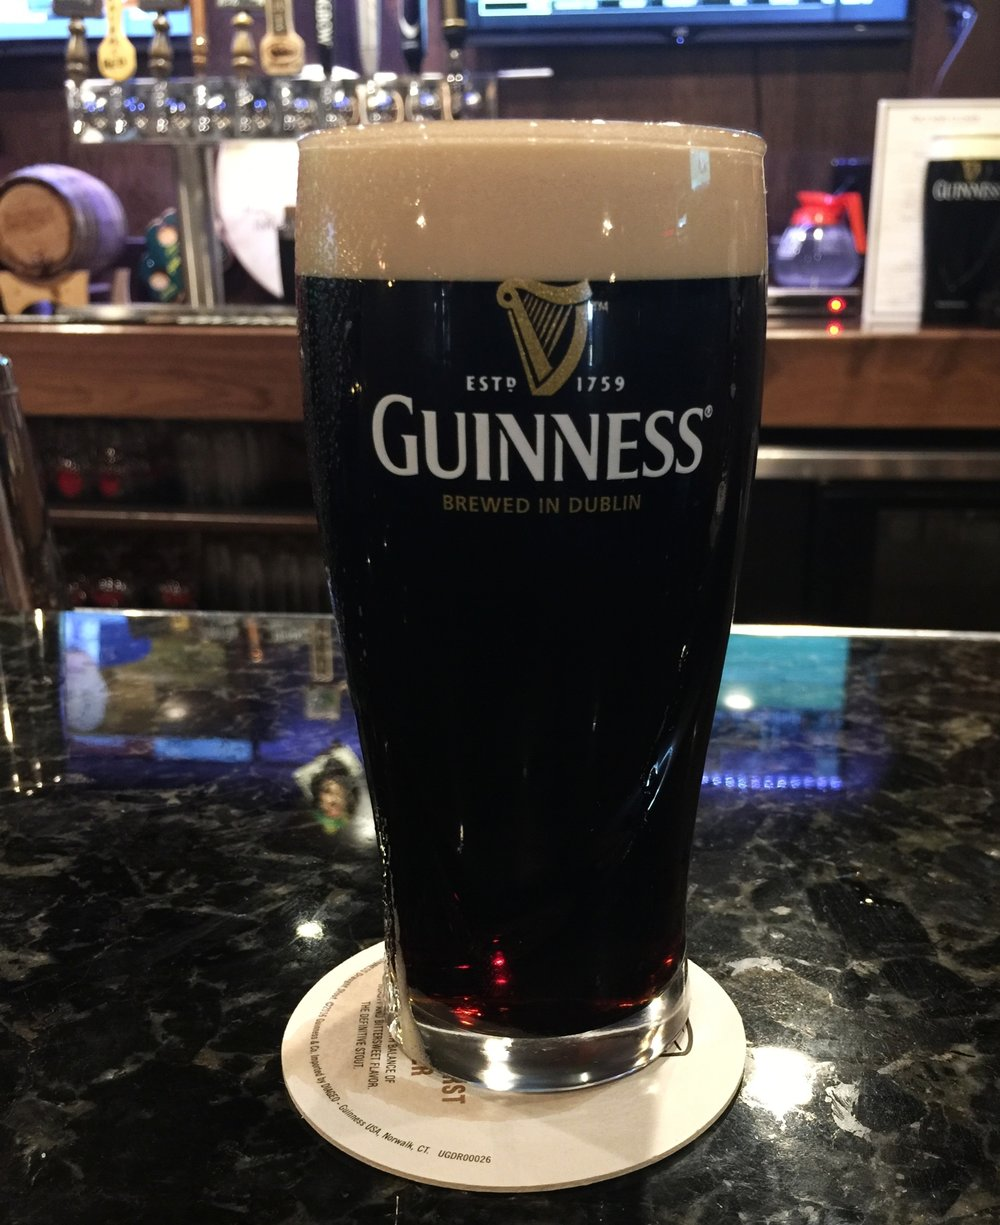 The perfec Guiness pour!